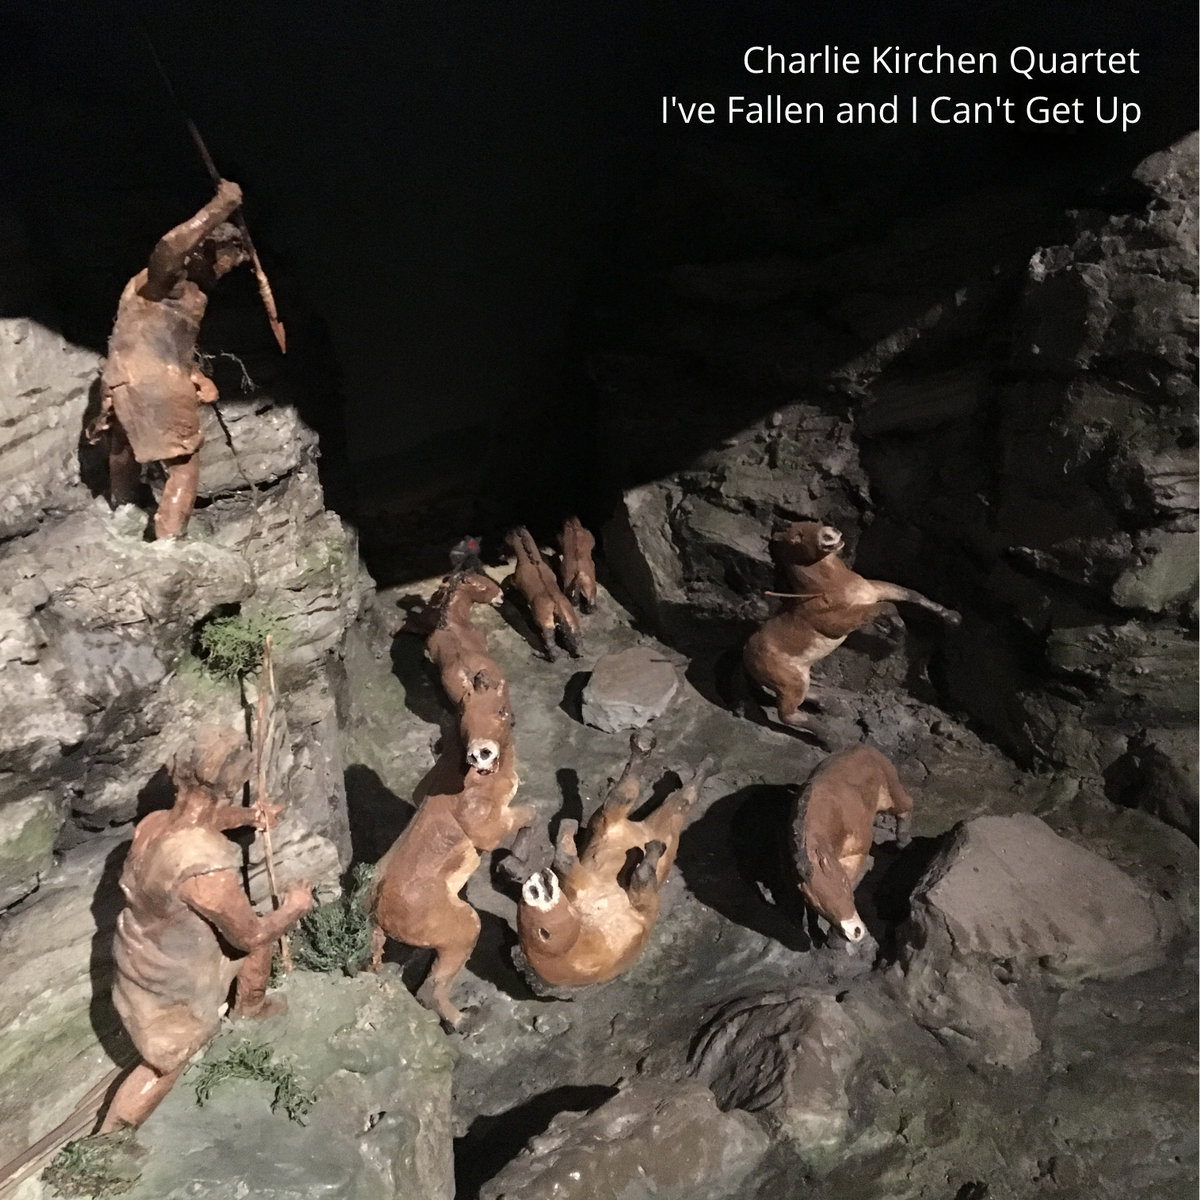 Charlie Kirchen Quartet — I've Fallen and I Can't Get Up